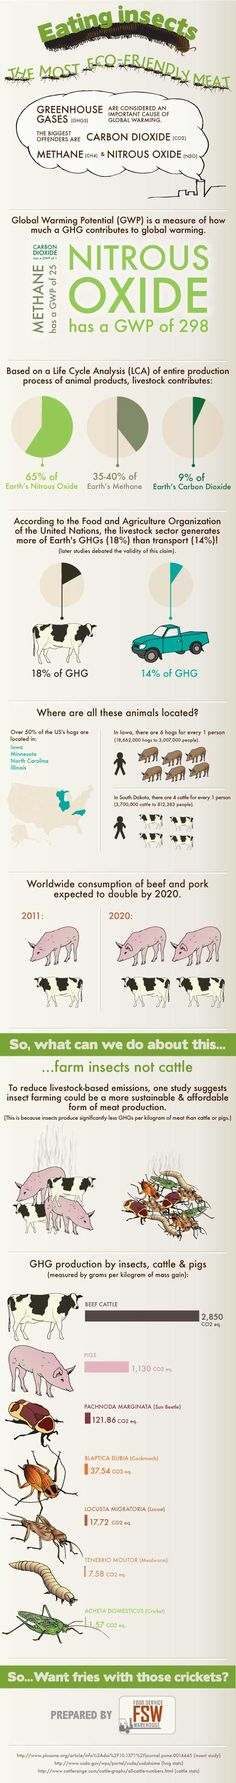 Eating insects: The most eco-friendly meat? [Infographic]